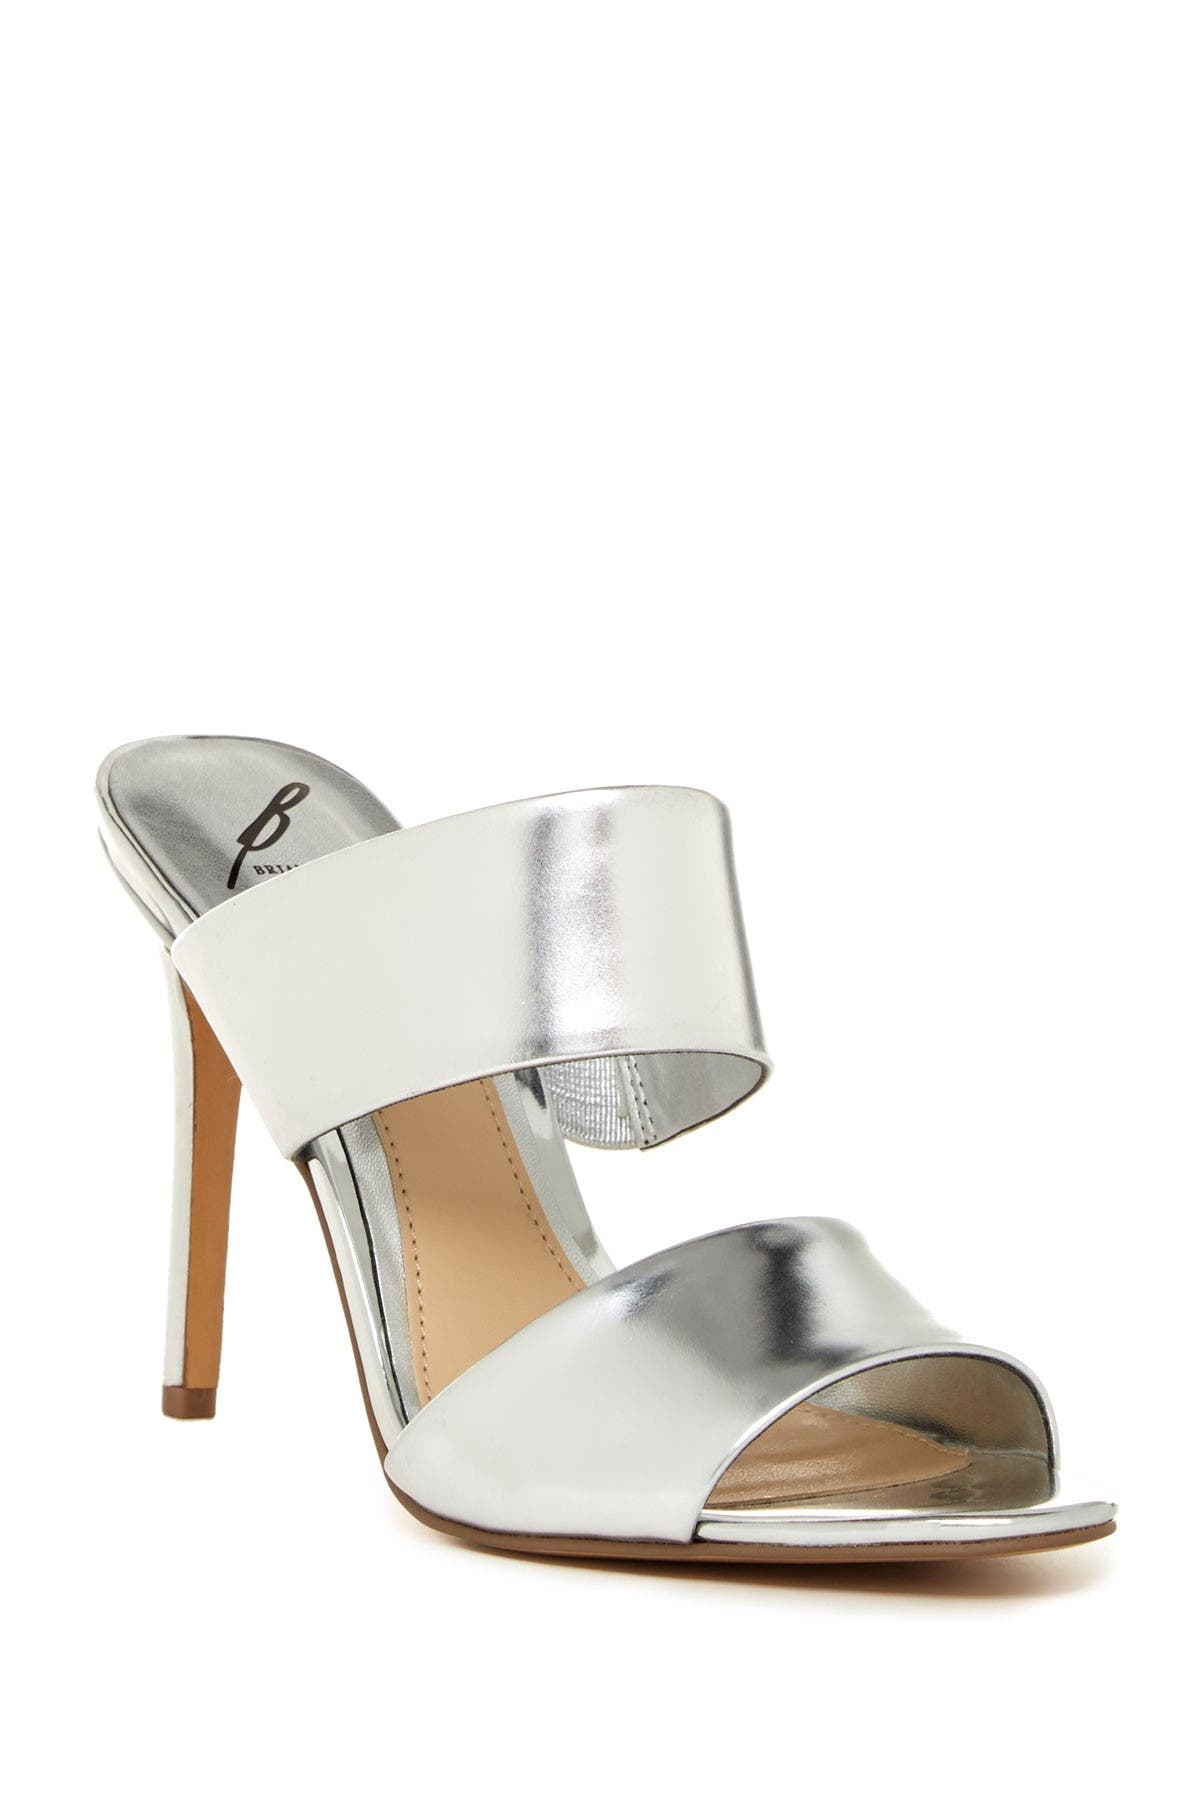 Image of B Brian Atwood Pippa Sandal